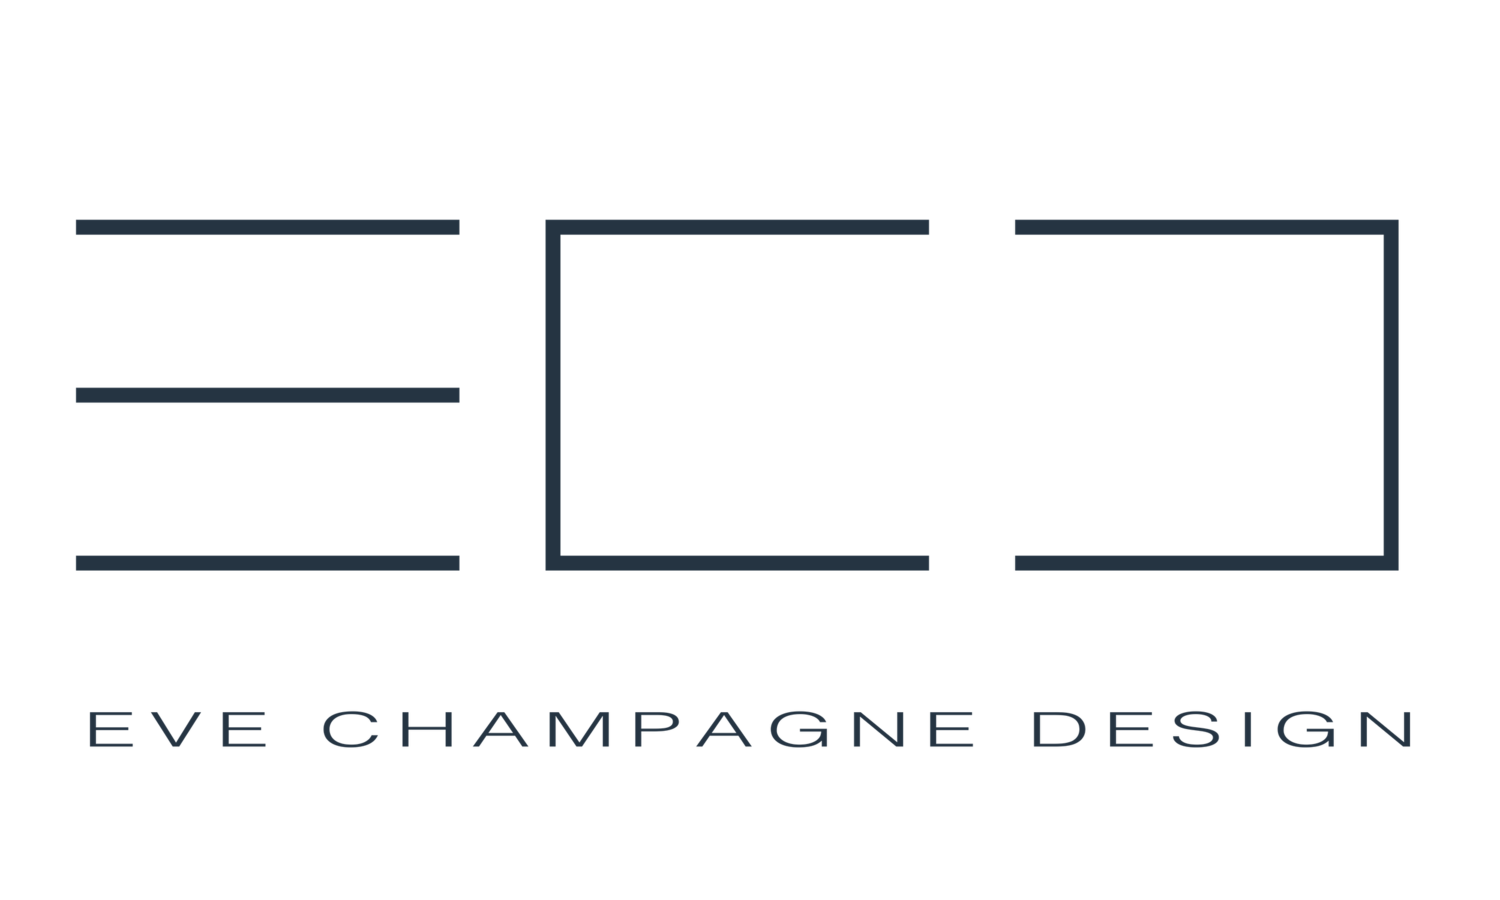 Eve Champagne Design